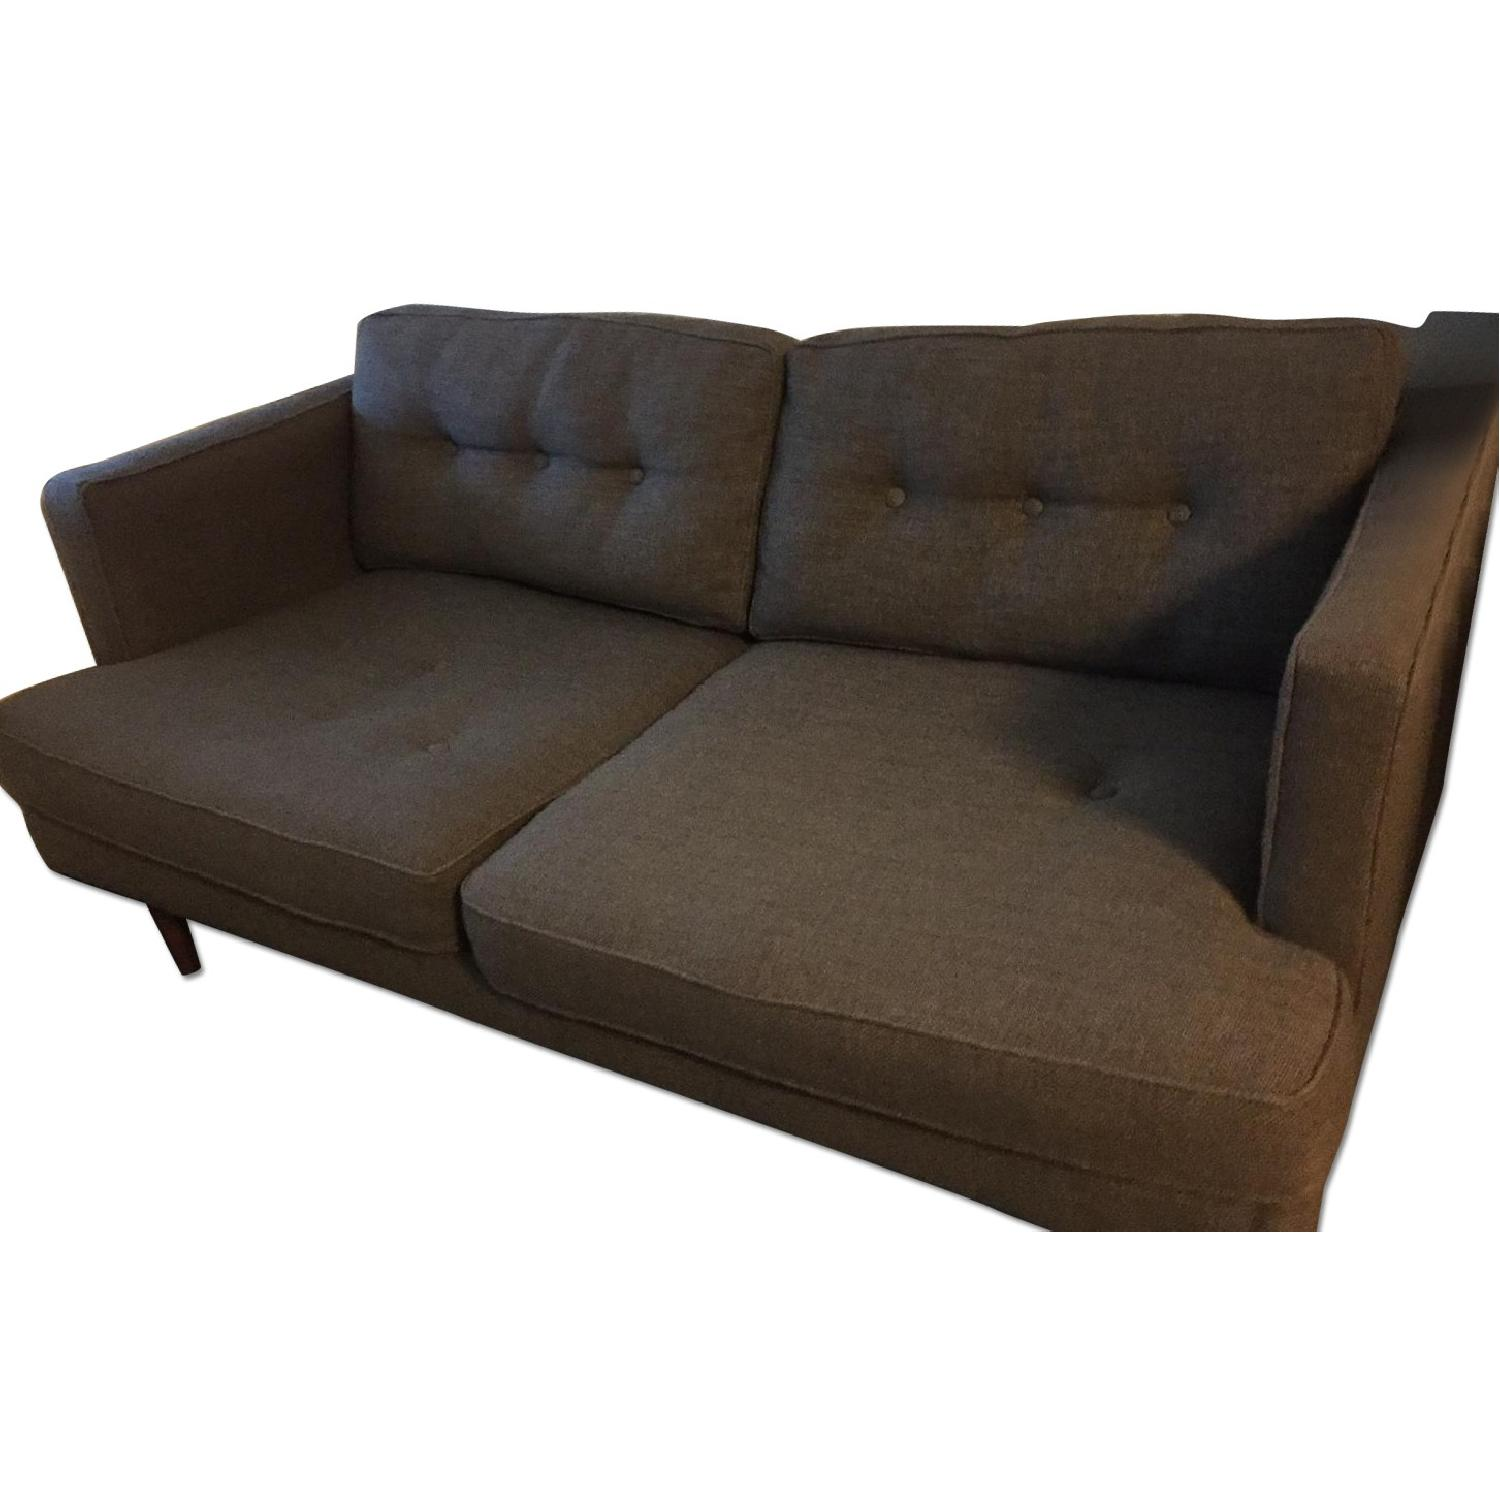 West Elm Peggy 2-Seater Poly Pebble Weave Sofa - image-0